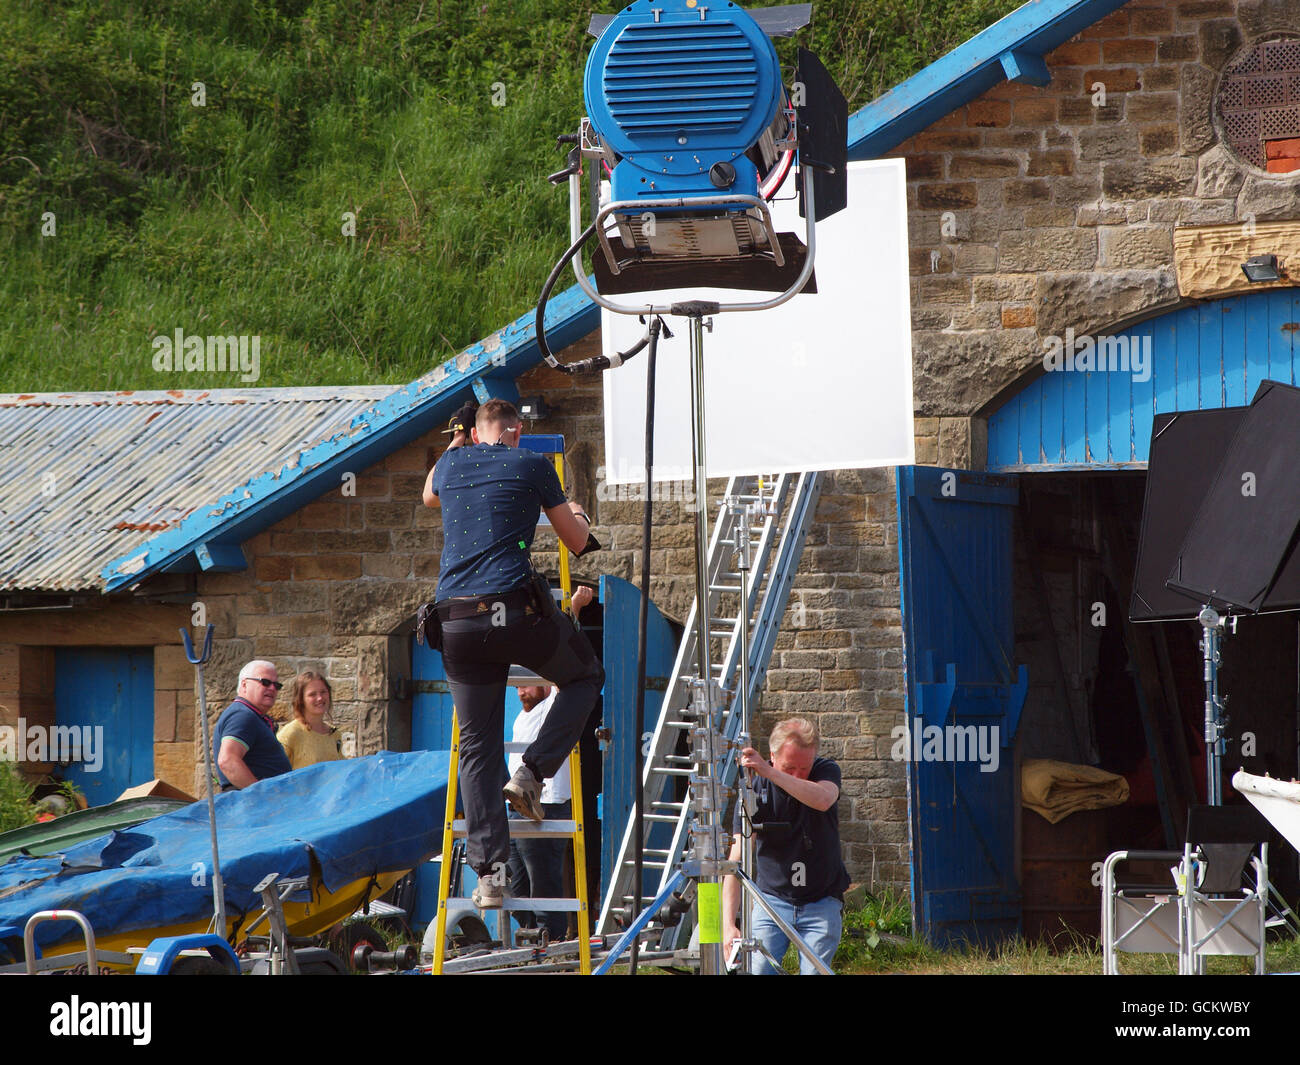 A film crew on location in Tyneside, filming a scene for 'Vara' the British detective television series - Stock Image